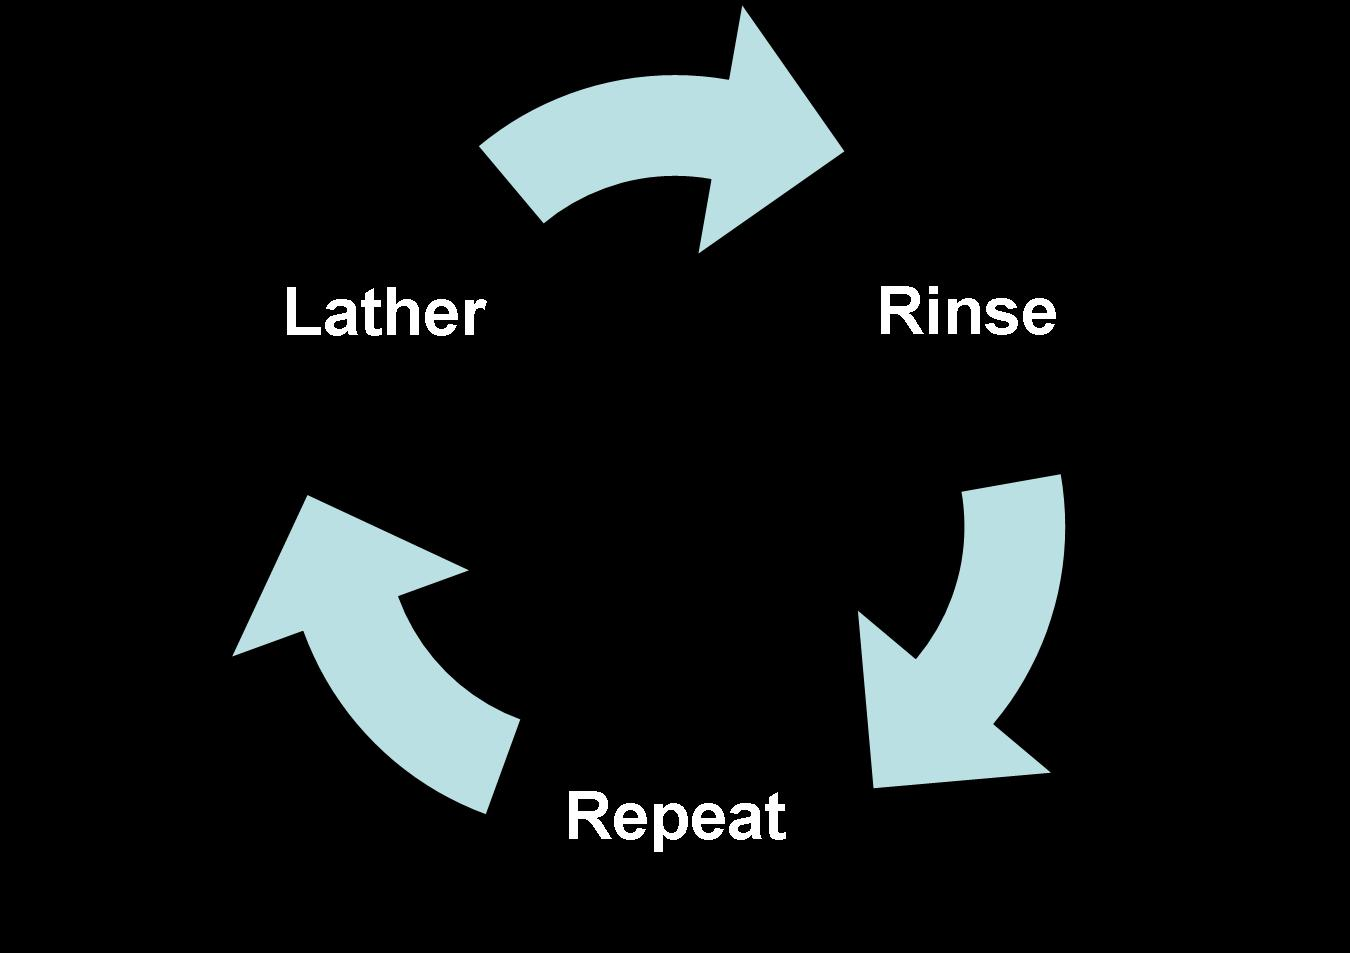 Rinse, lather repeat, a process that goes on indefinitely